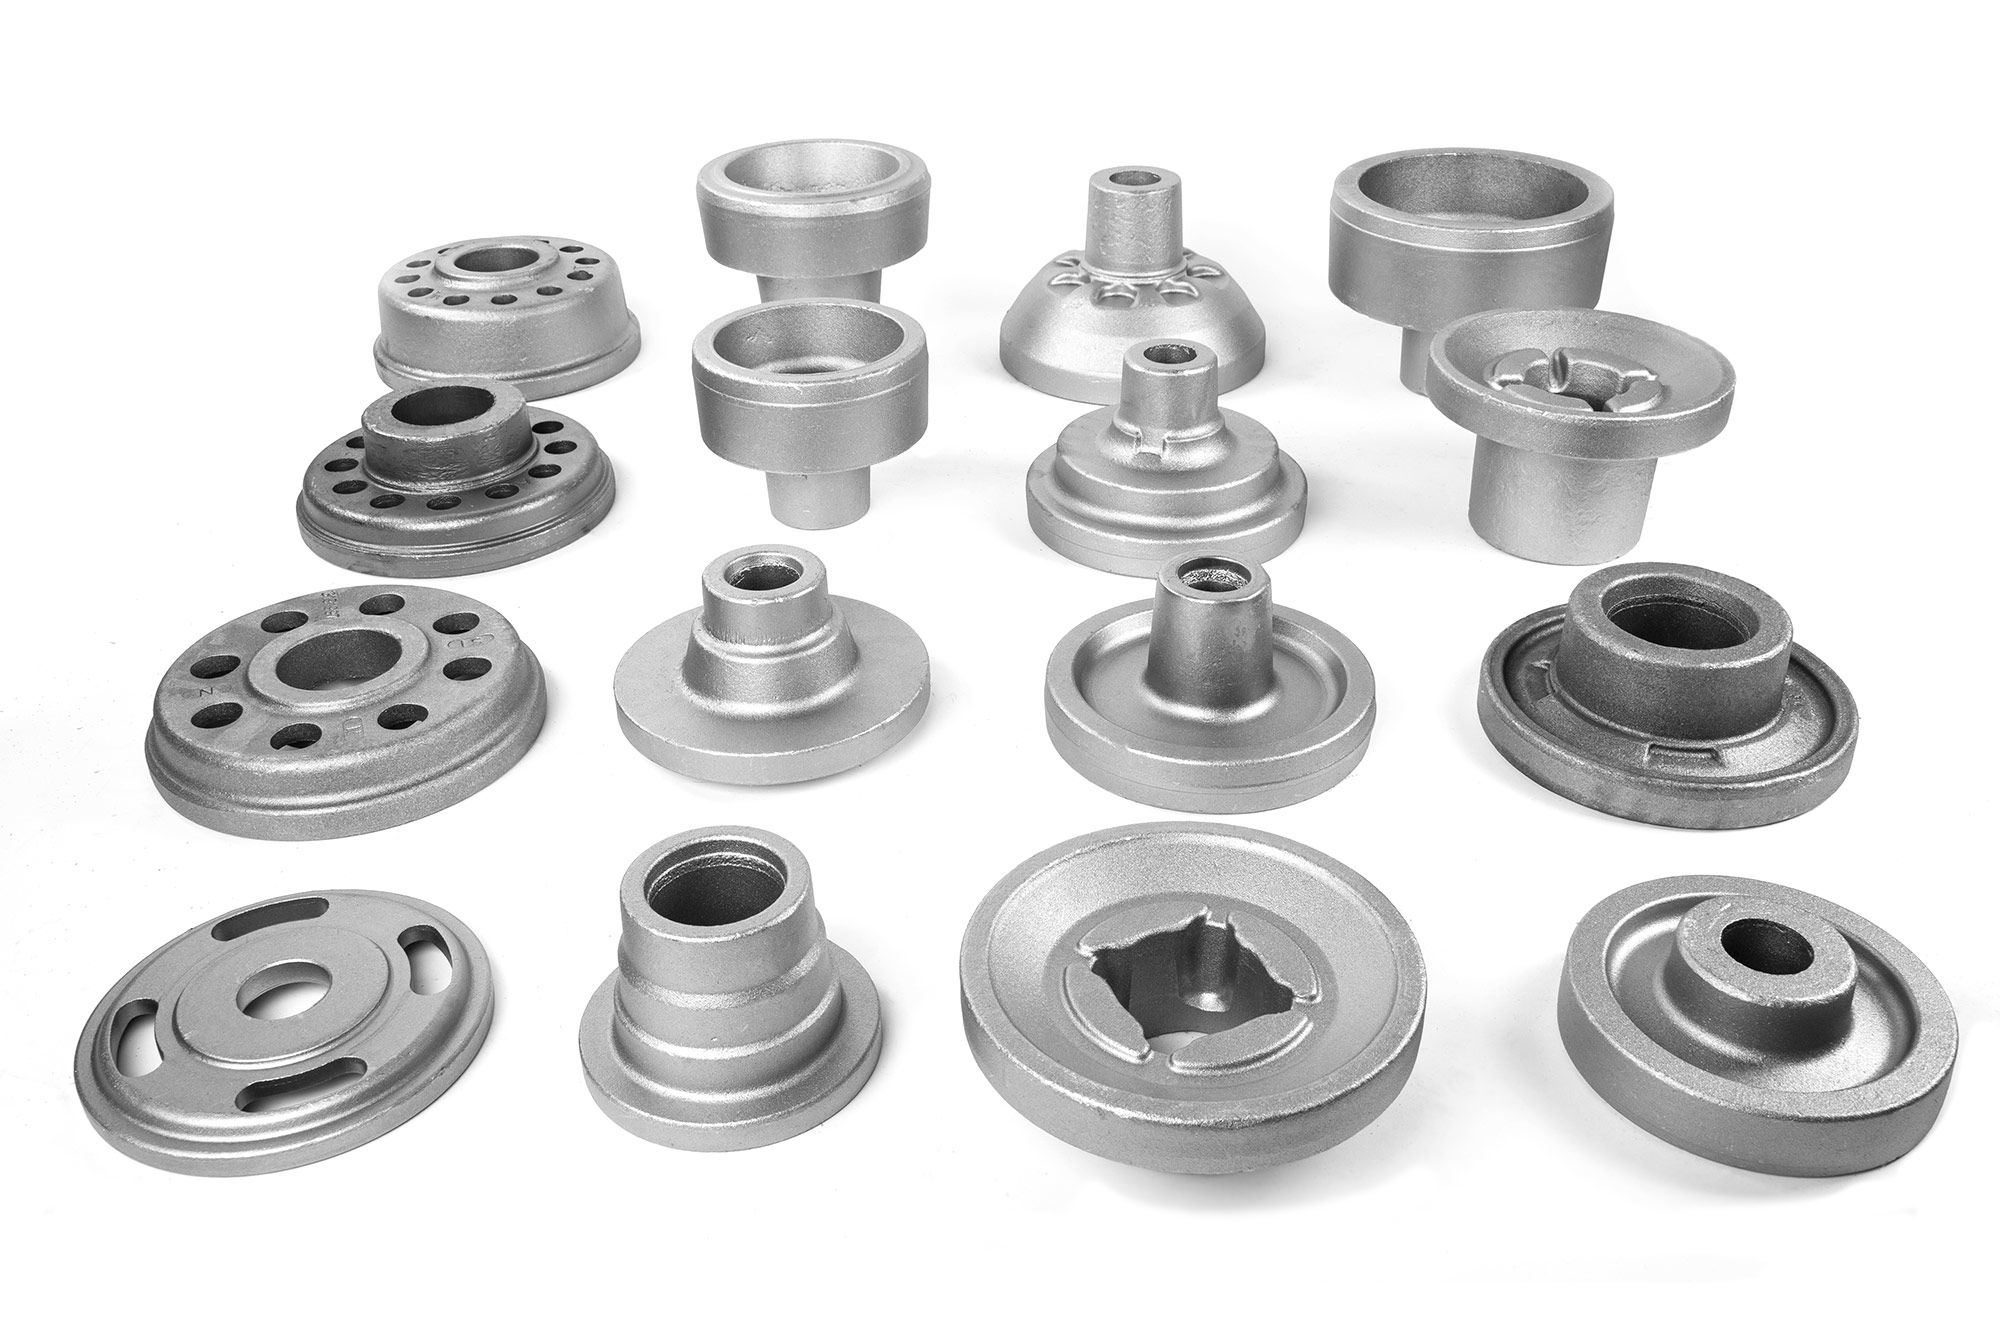 Covers and Ring Gears